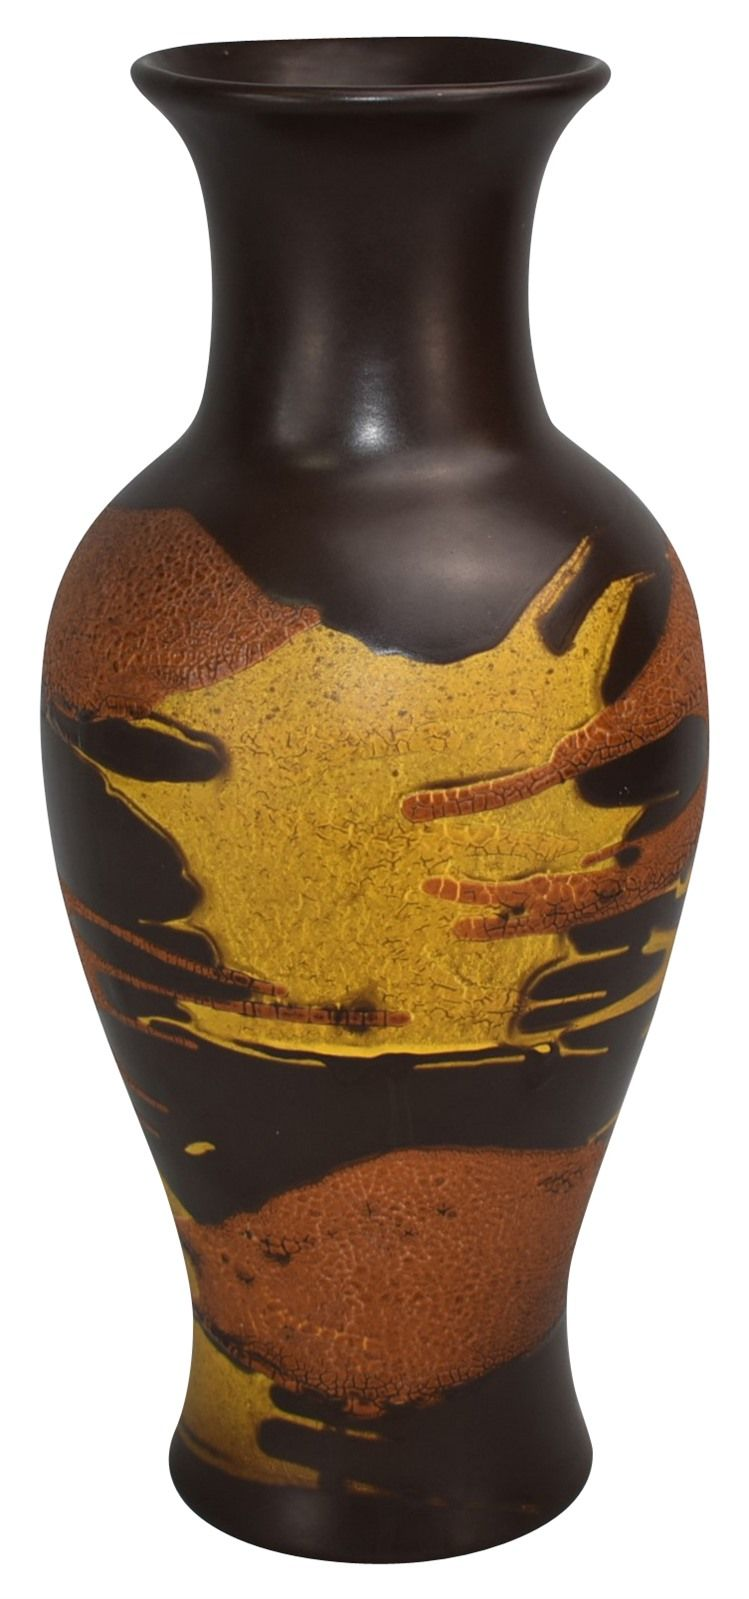 Haeger Pottery Brown Yellow Earth Wrap Vase Shape 4170 Pottery Art Vase Shapes Pottery